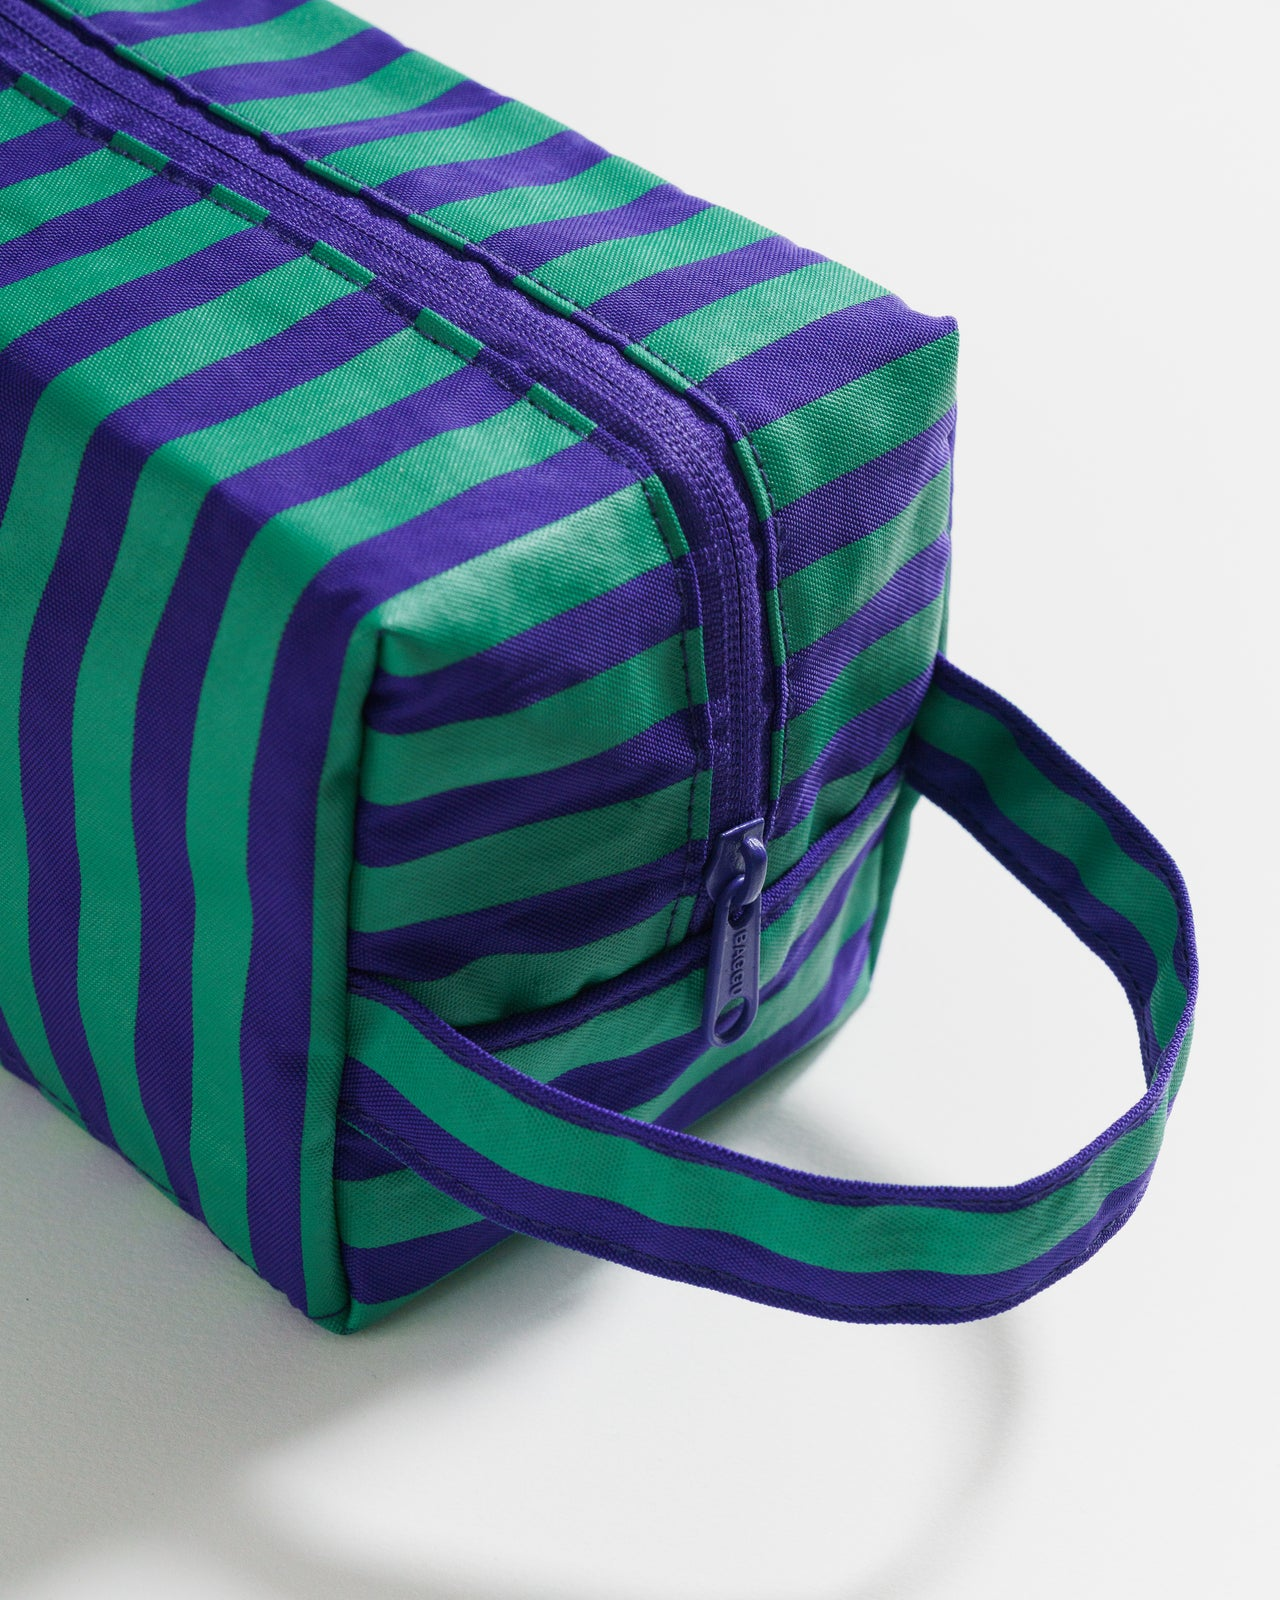 Dopp Kit - Cobalt and Jade Stripe